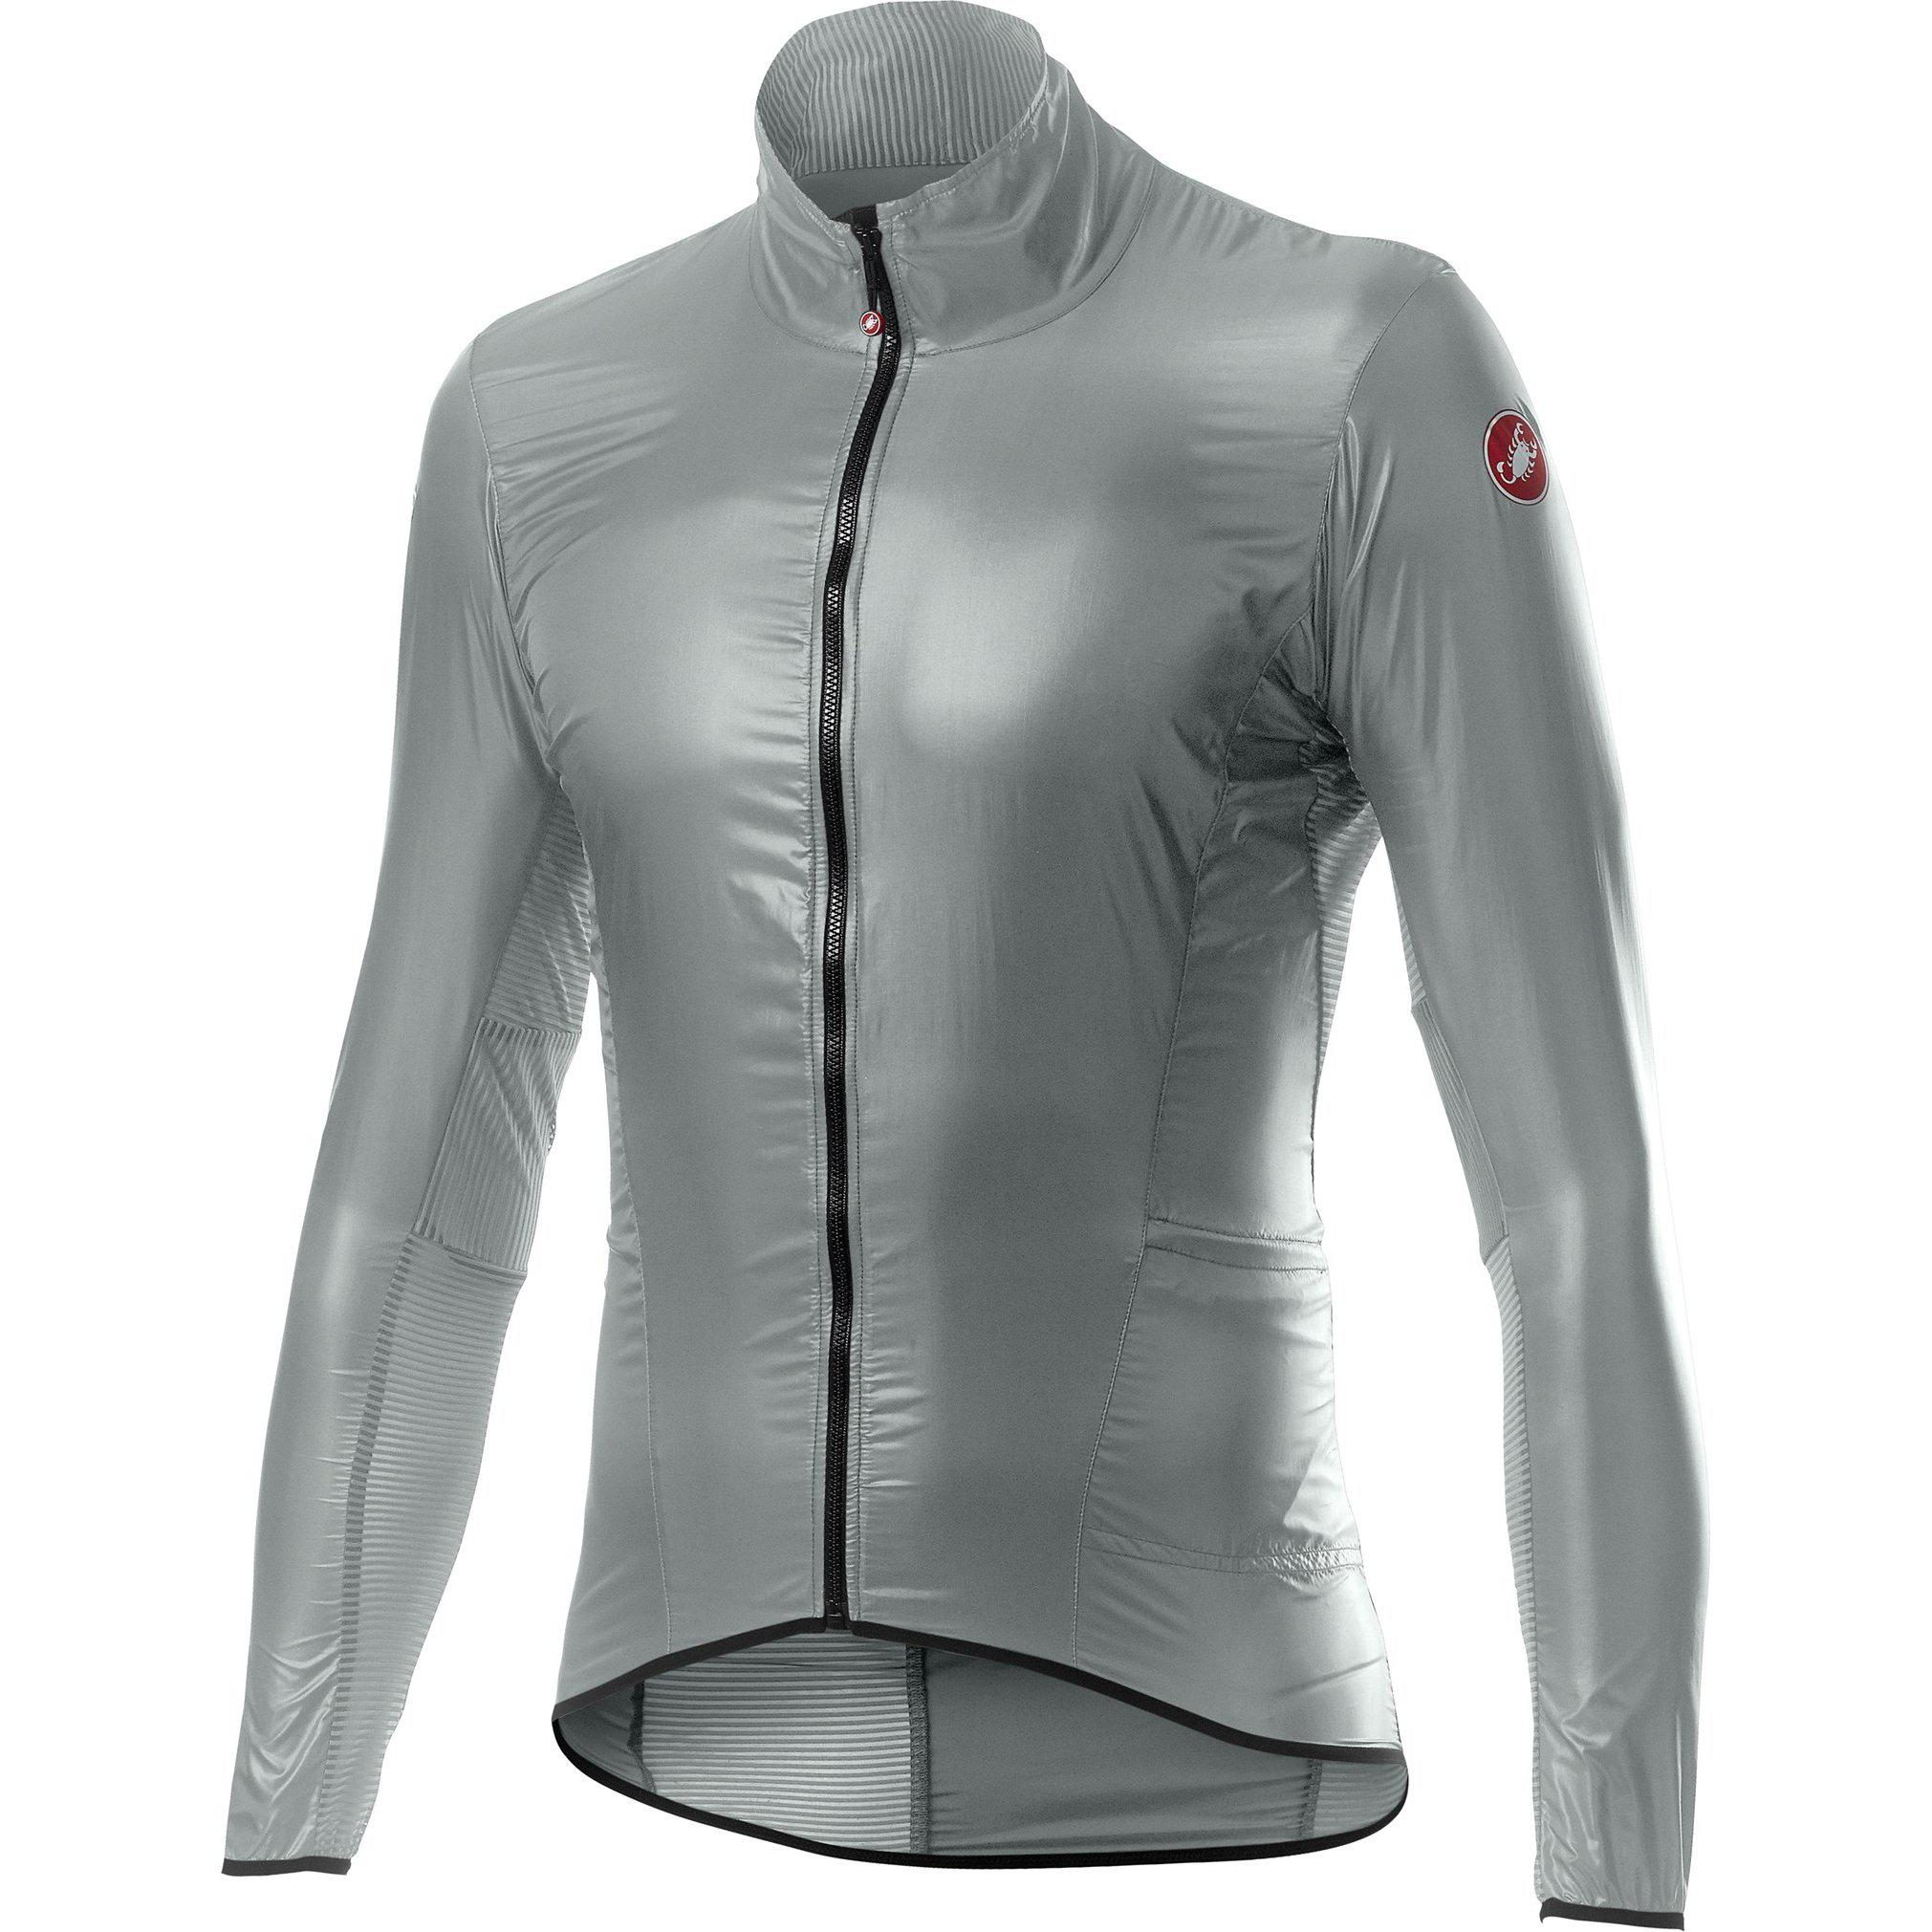 Castelli-Castelli Aria Shell Jacket-Silver Gray-S-CS200588702-saddleback-elite-performance-cycling